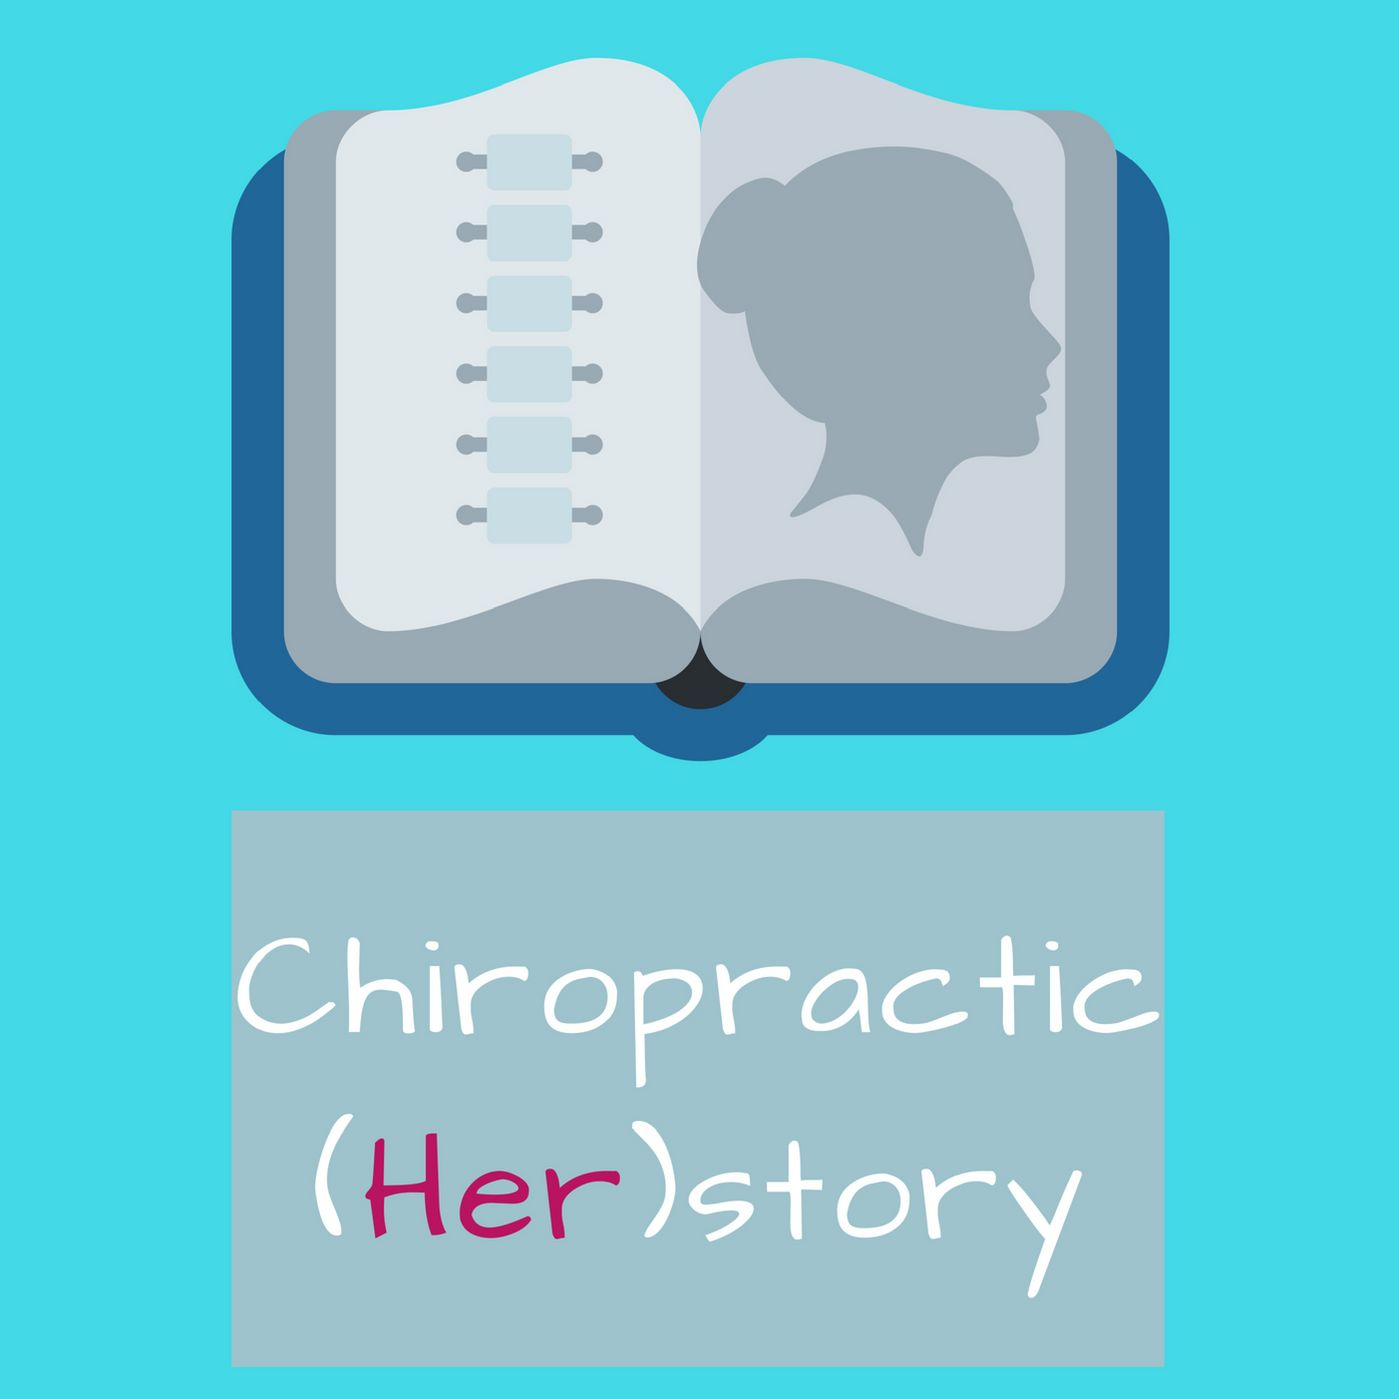 Dr. Anna Saylor- Chiropractic (Her)story Episode 41